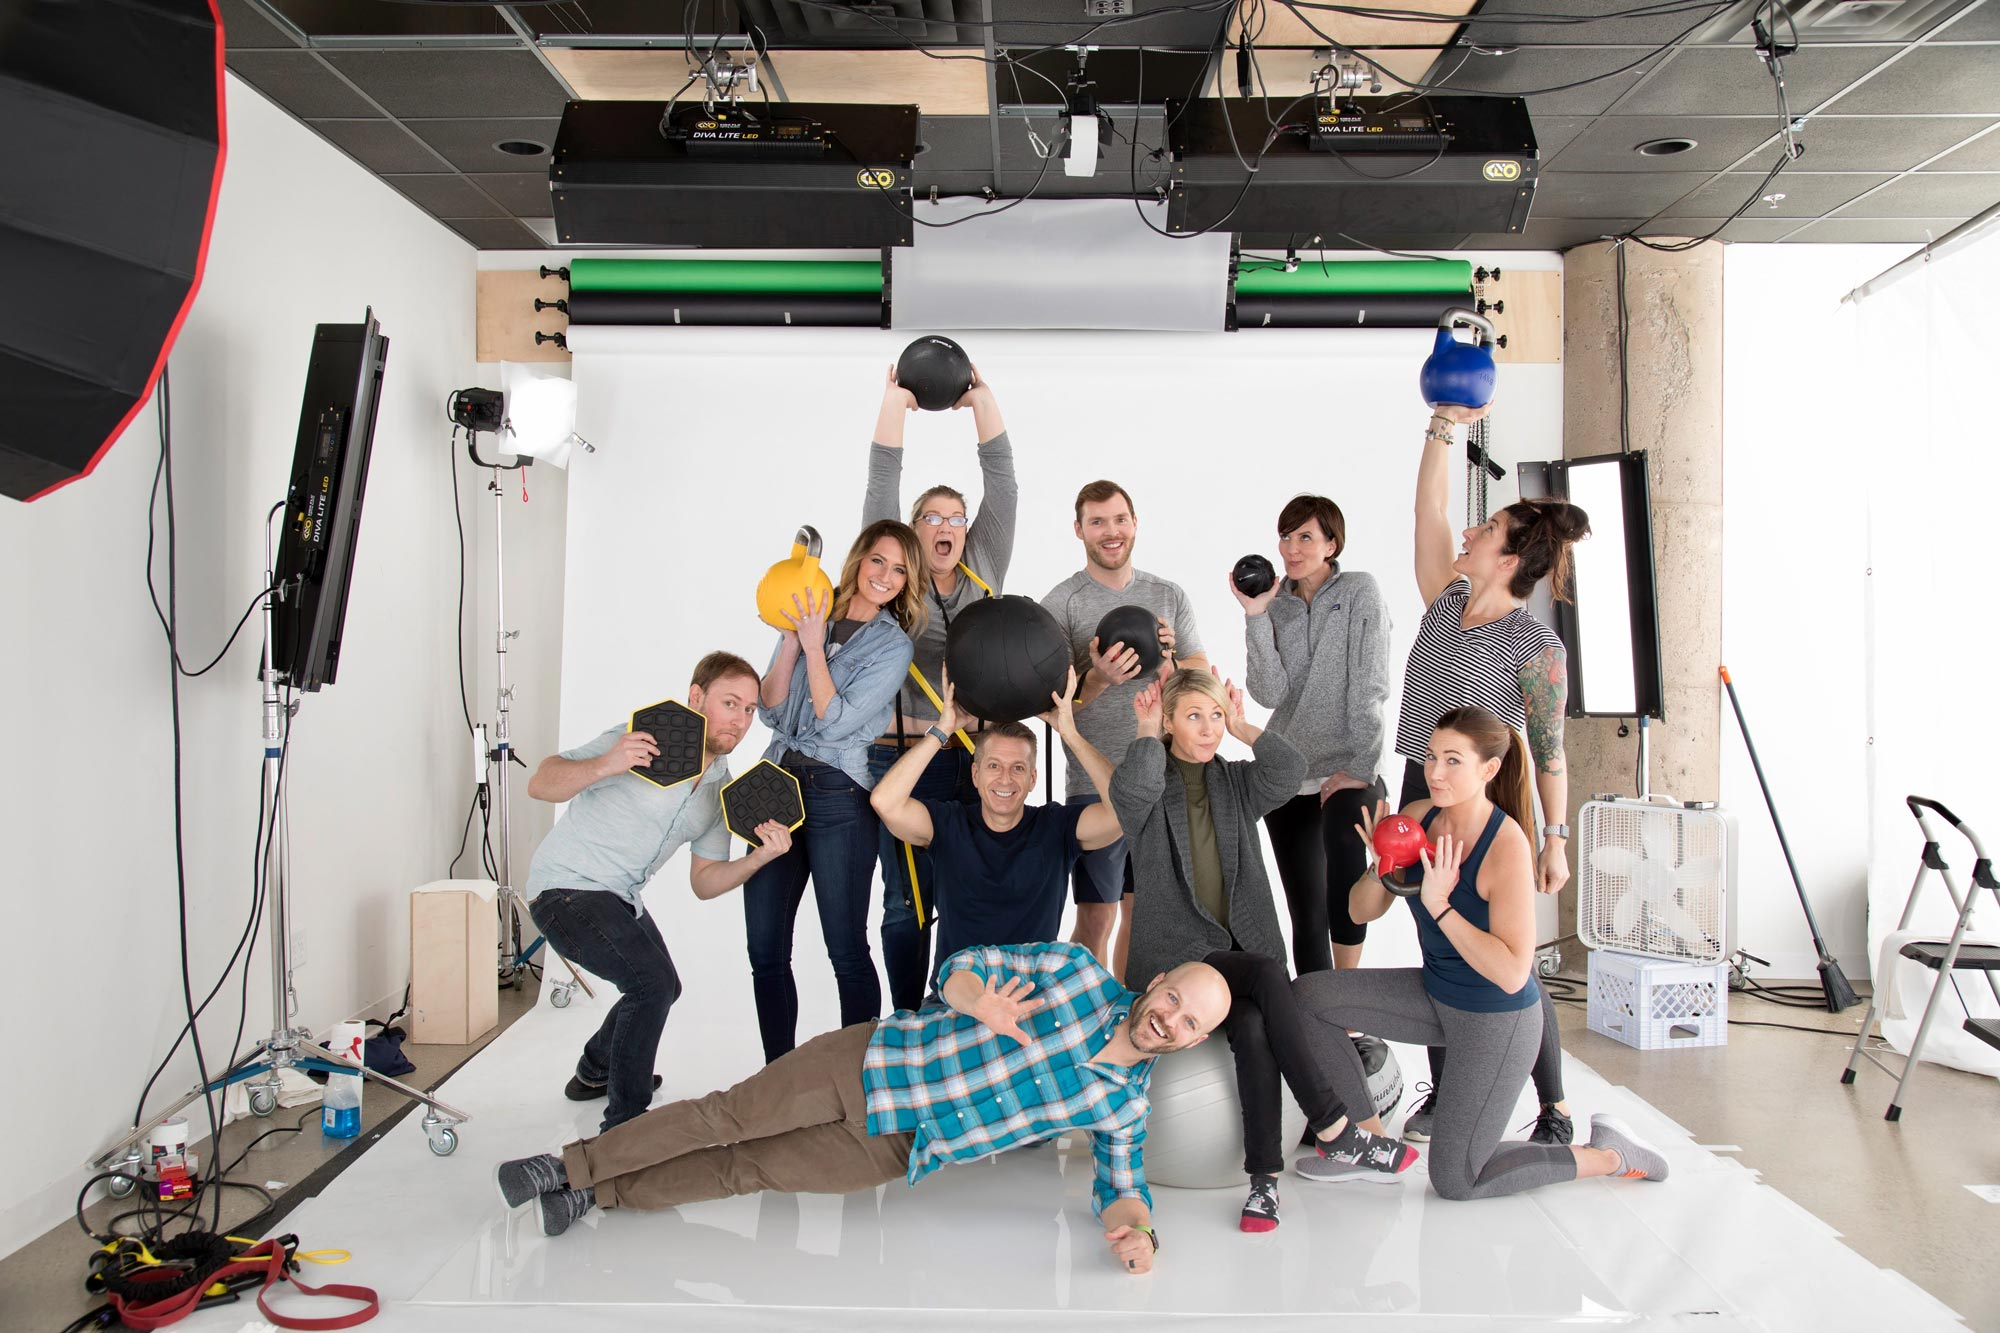 group photo on white backdrop holding workout equipment